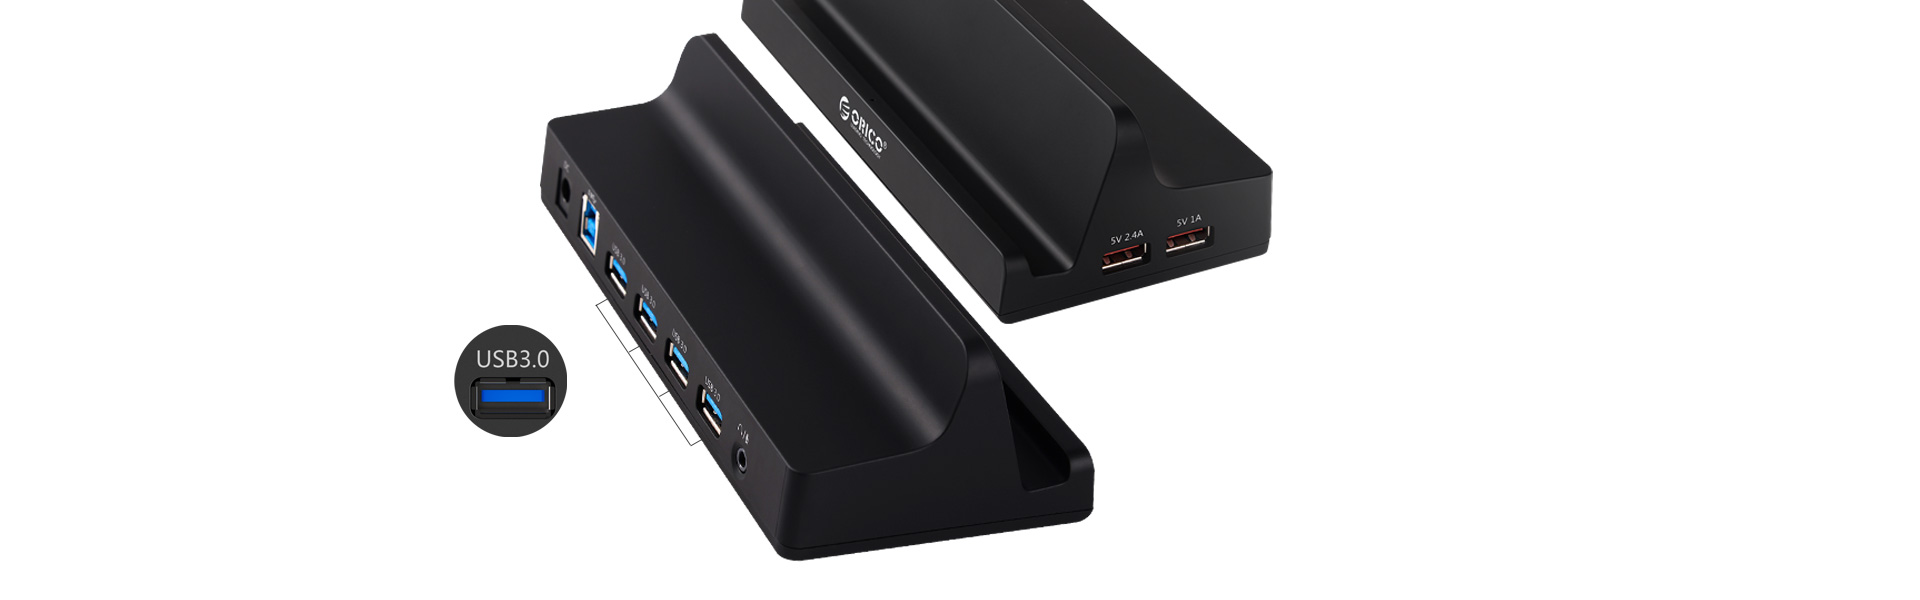 4 SuperSpeed USB3.0 ports